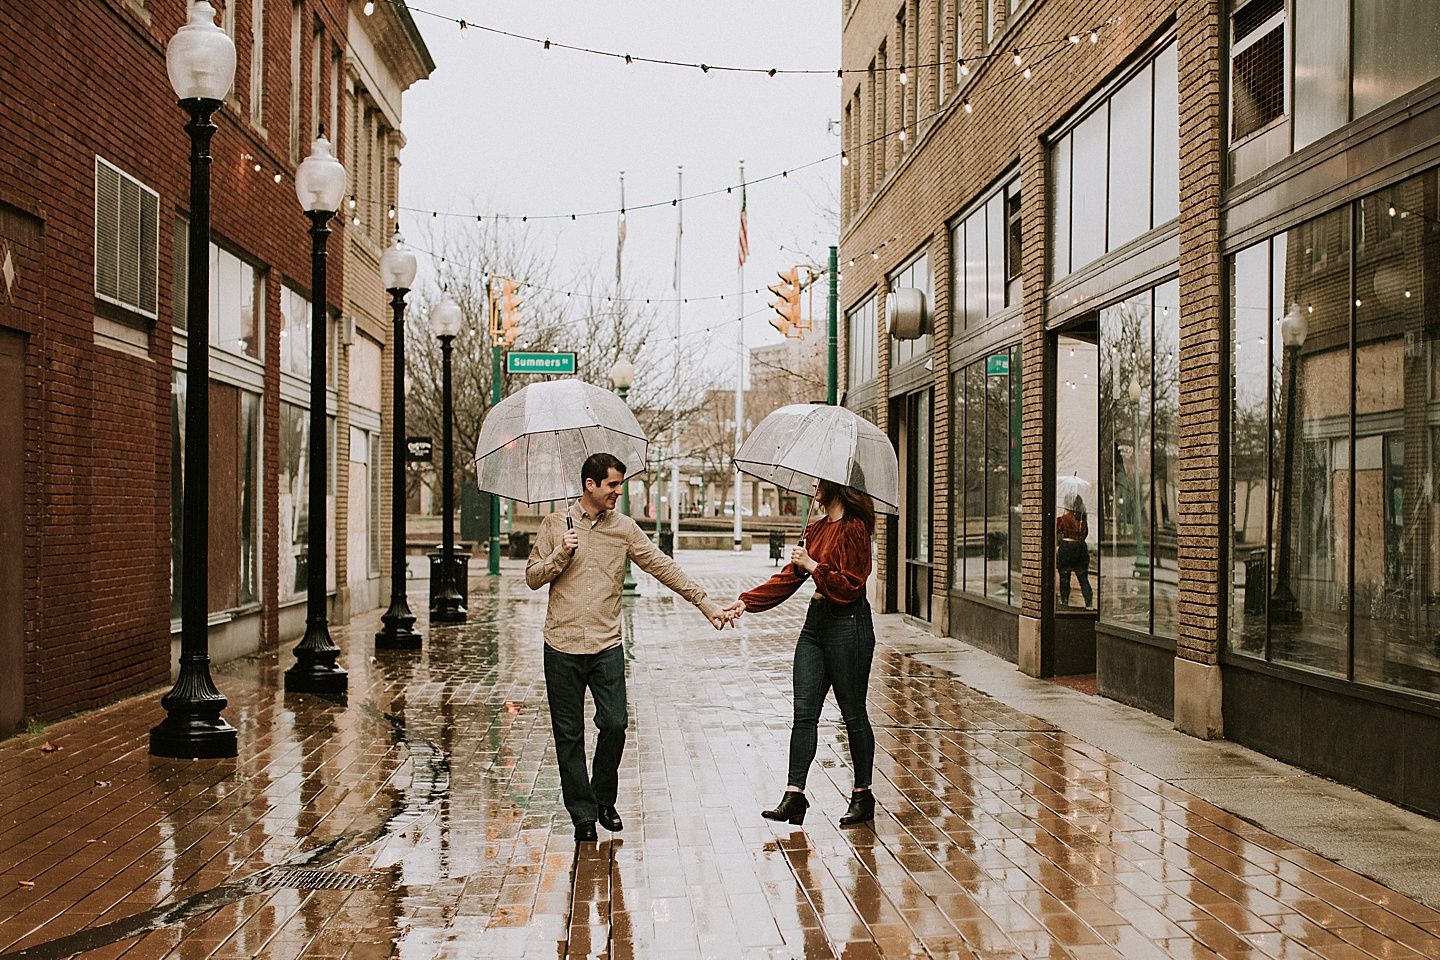 Couple walking down a brick street with umbrellas